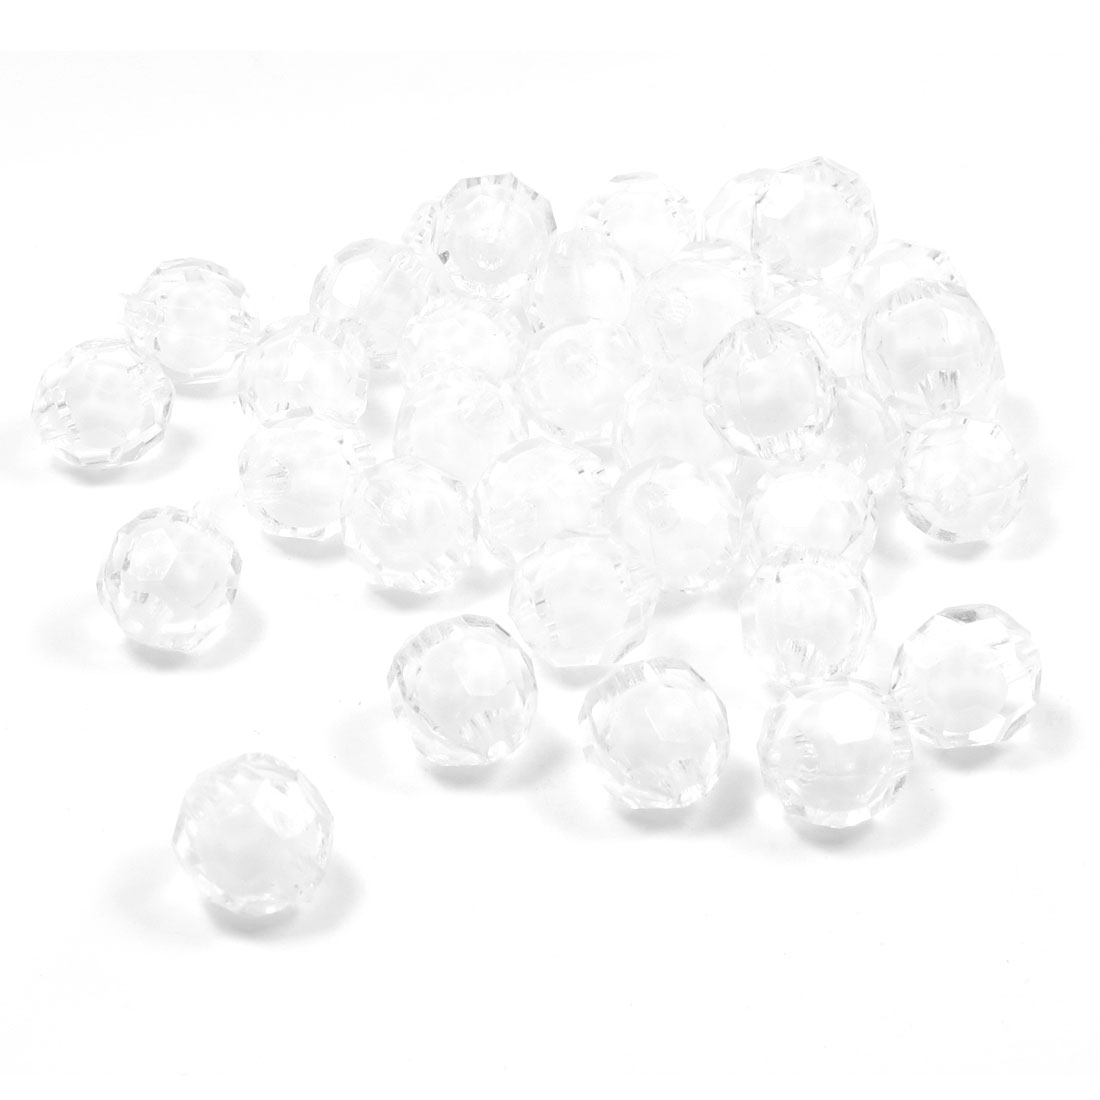 36 Pcs White Faceted Jewelry Findings Plastic Beads